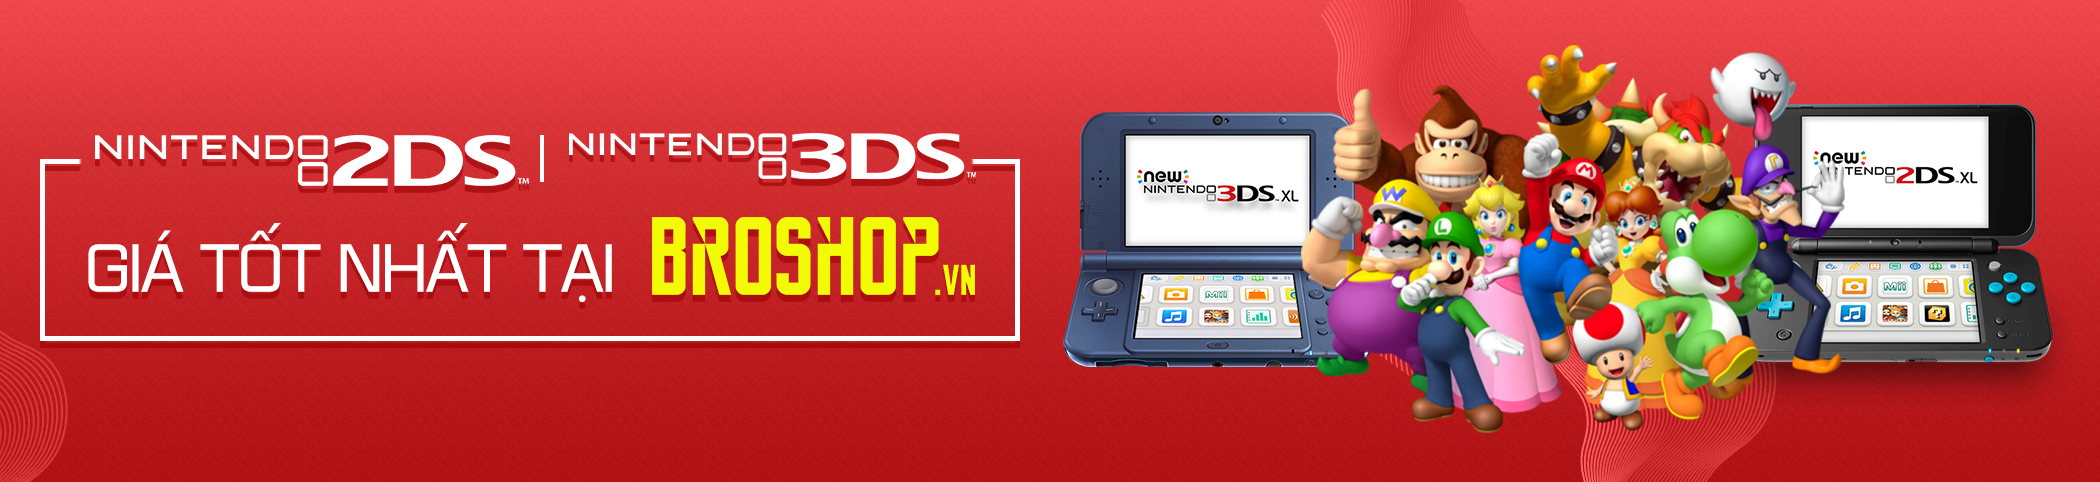 Game 3DS 2DS